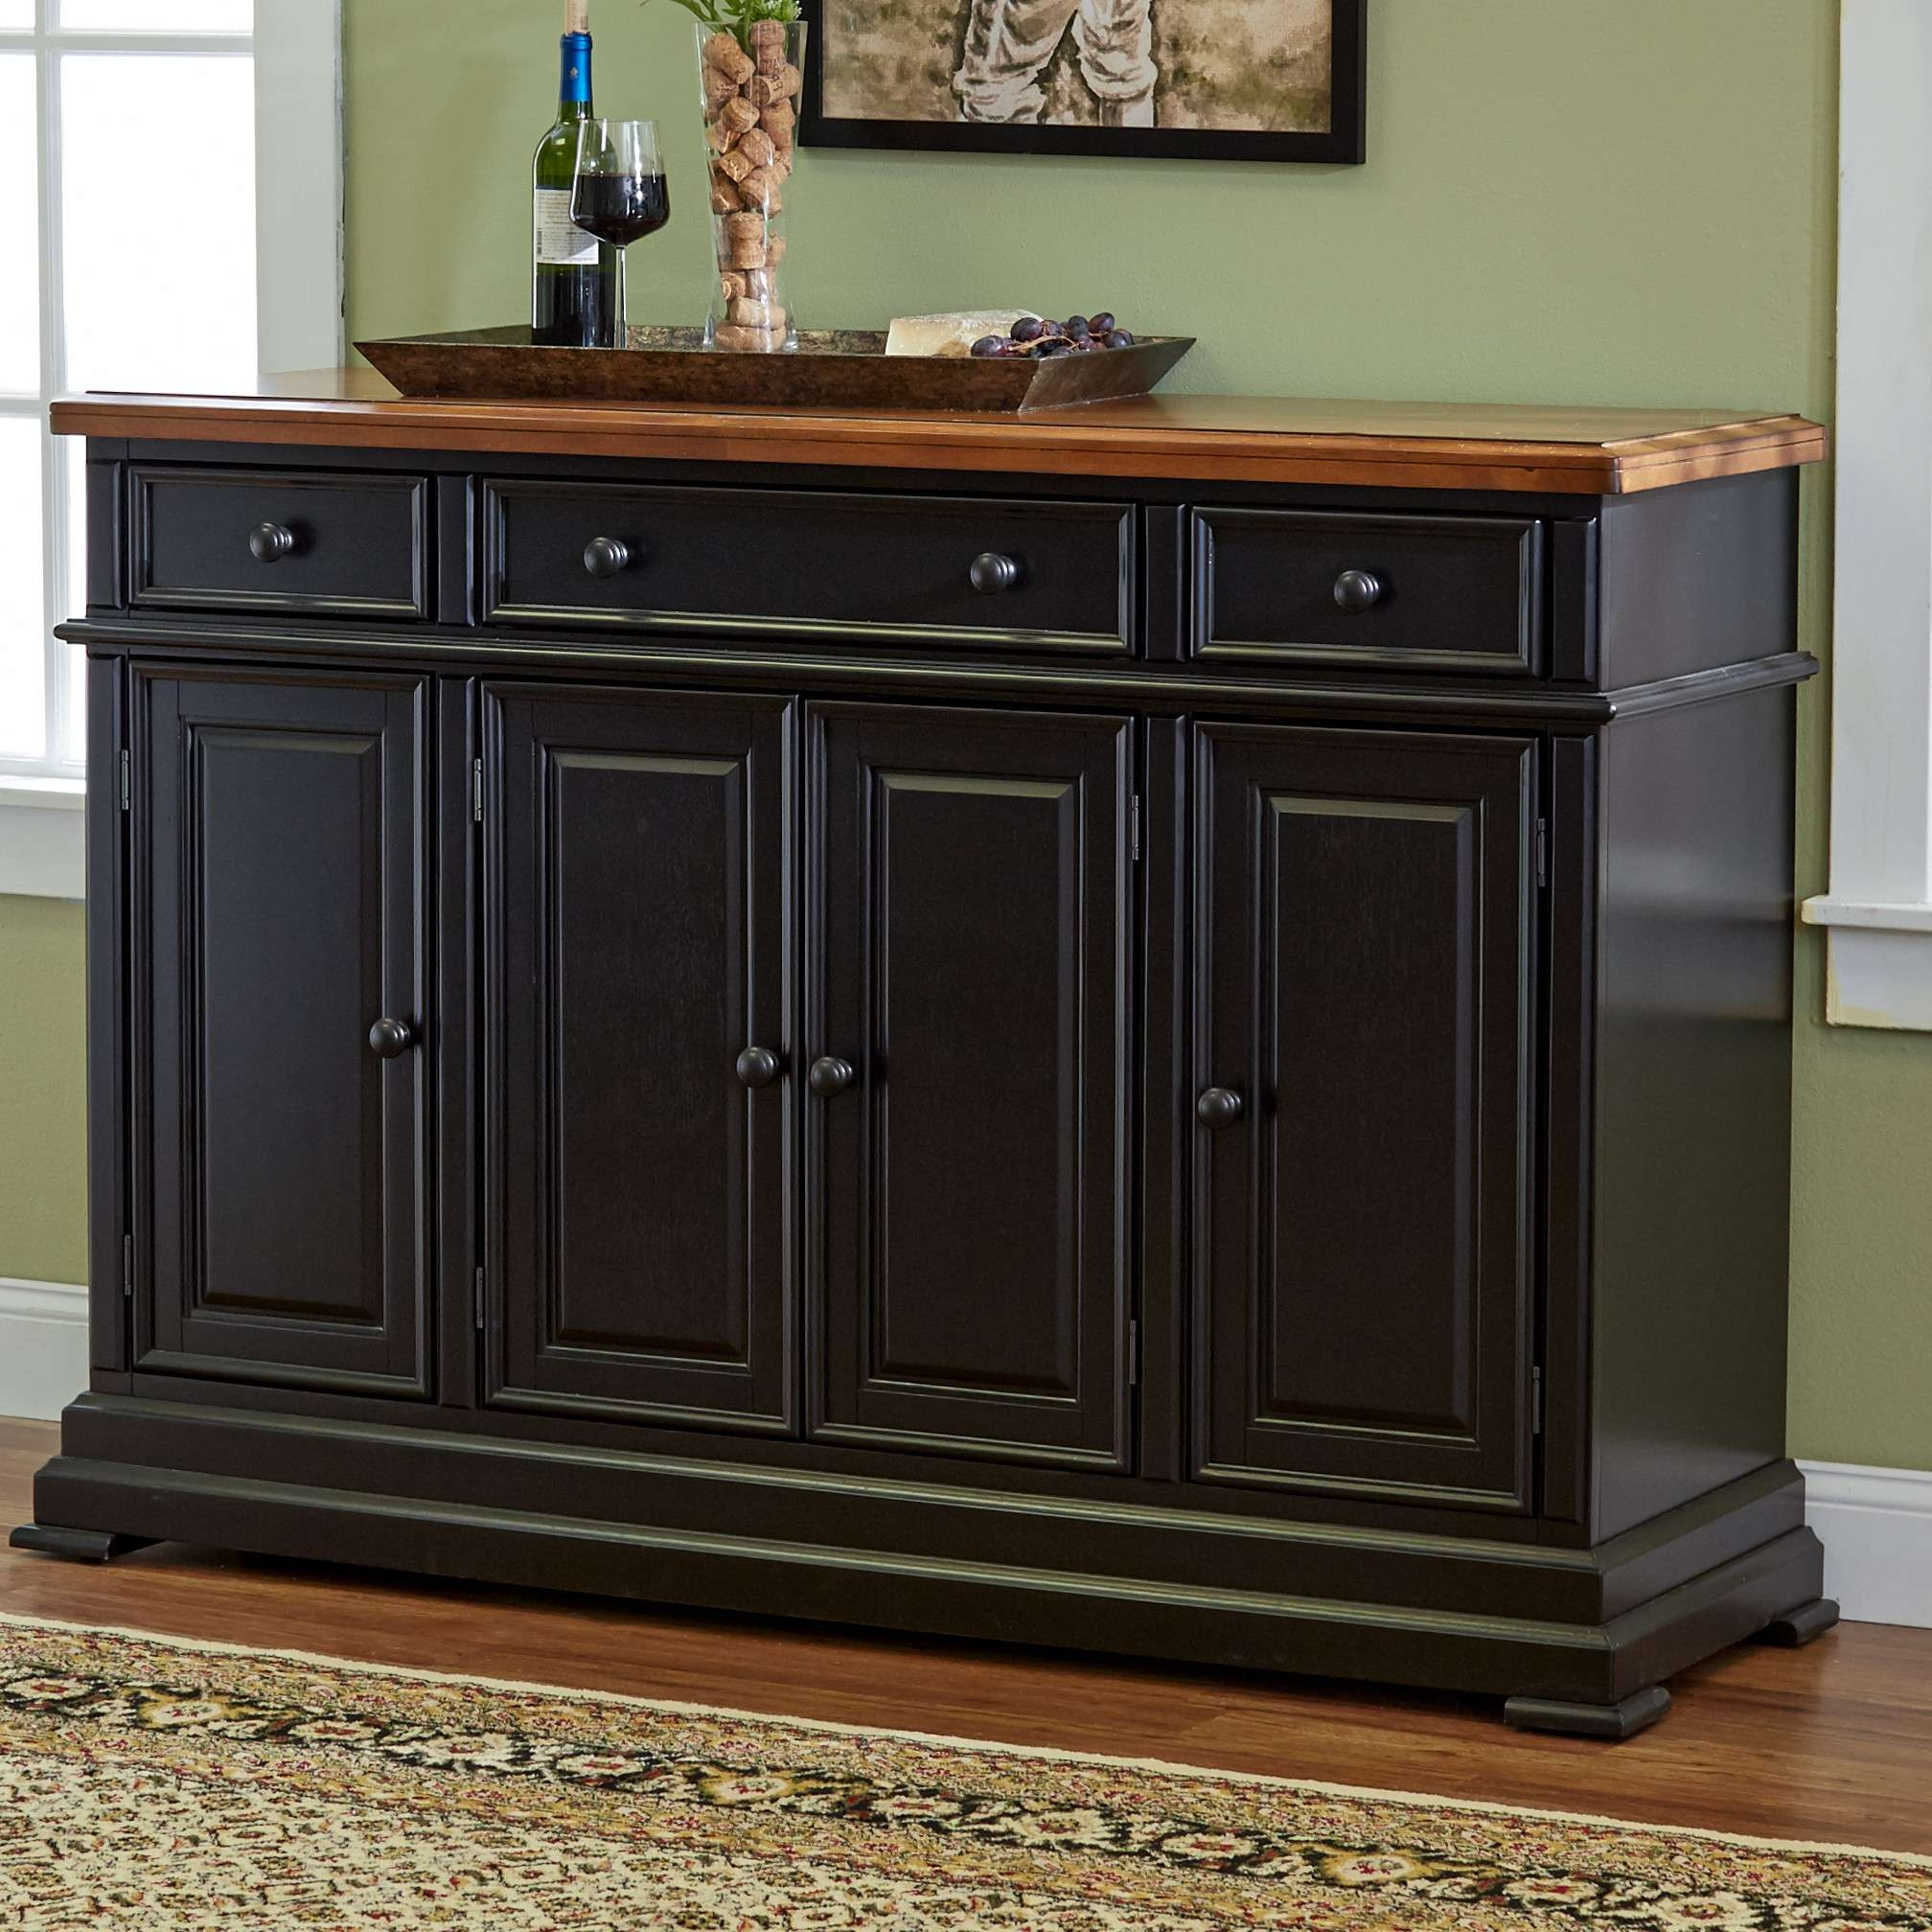 Kchen Sideboard. Simple Costzon Storage Sideboard Home Kitchen Intended For Dining Room Sideboards And Buffets (Gallery 12 of 20)